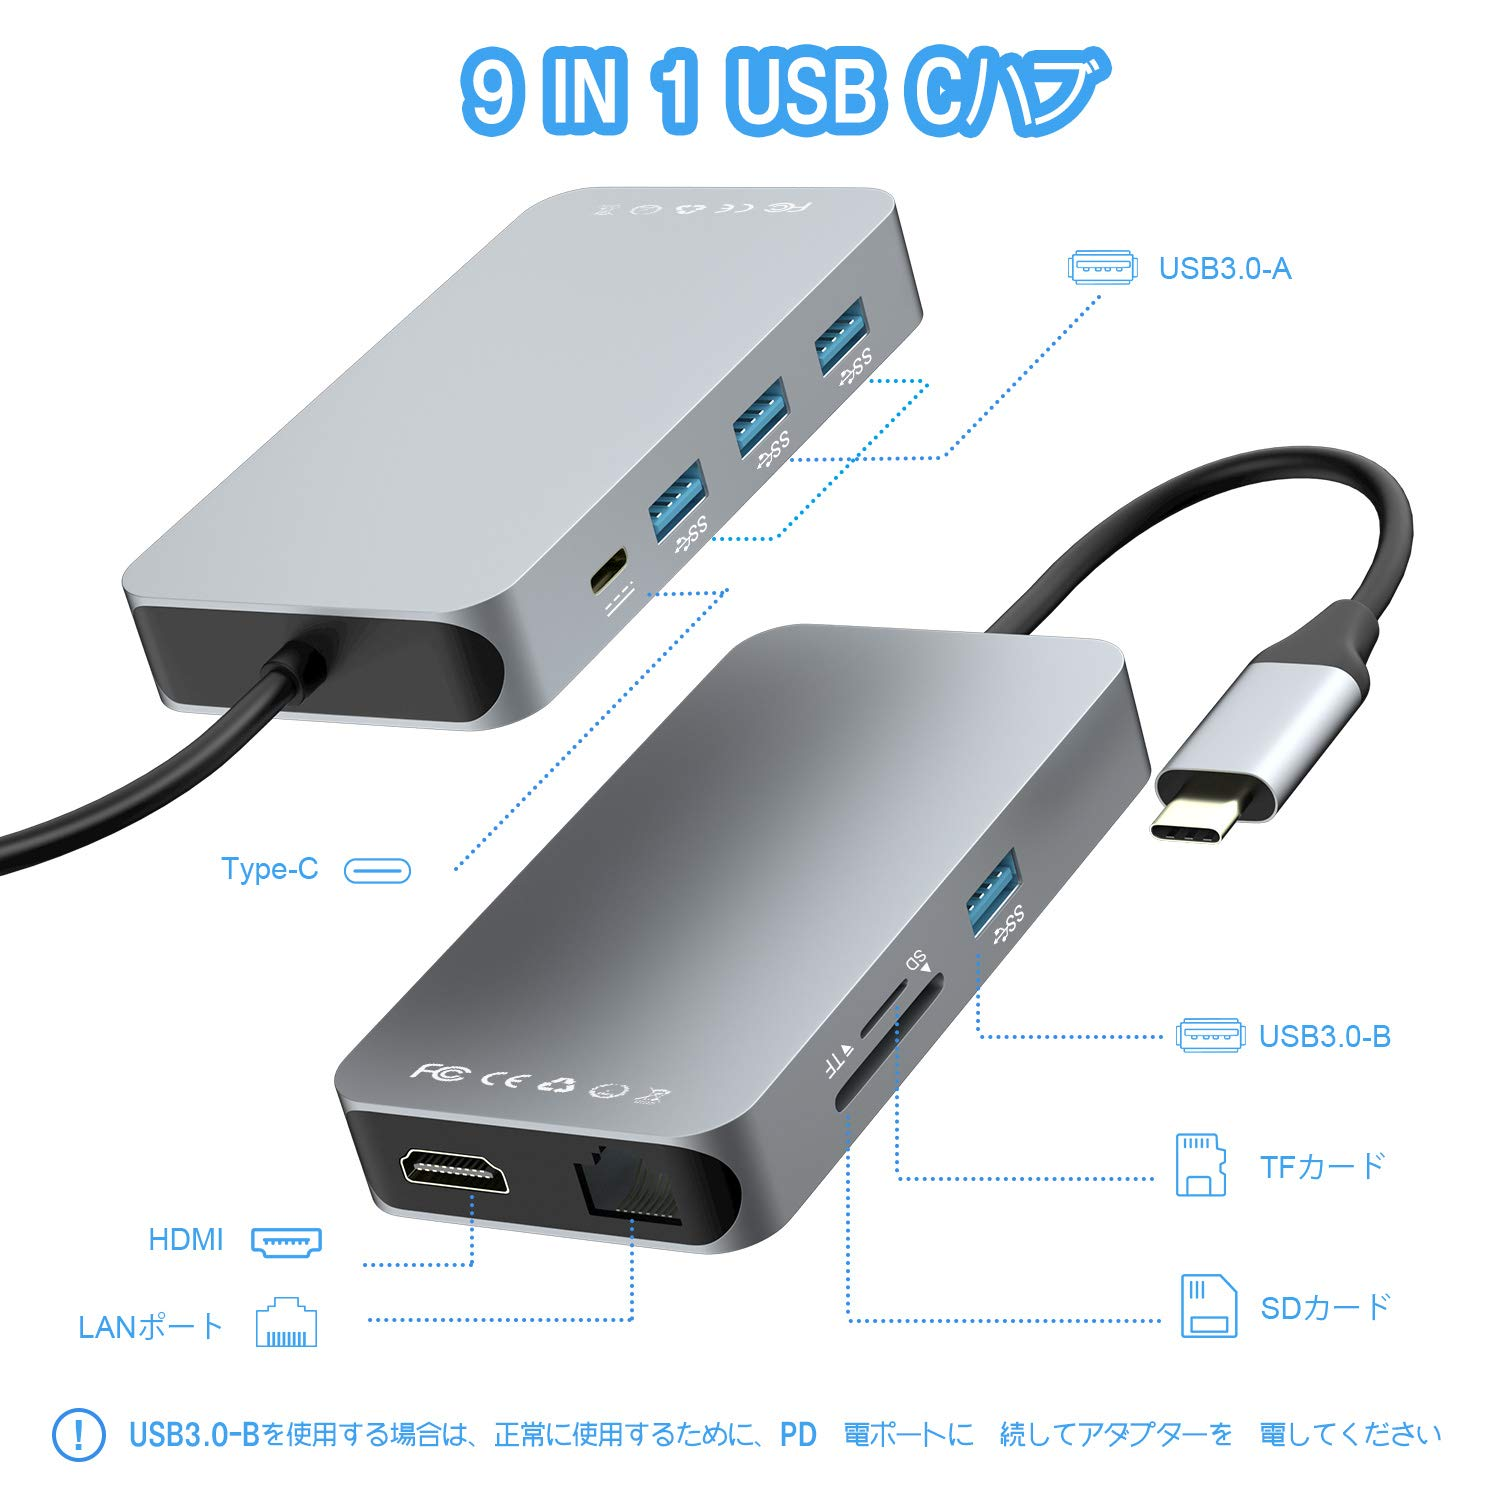 Thunderbolt 3 Type-C USB C to HDMI 4K*2K 3 Port USB 3.0 Hub Adapter For MacBook